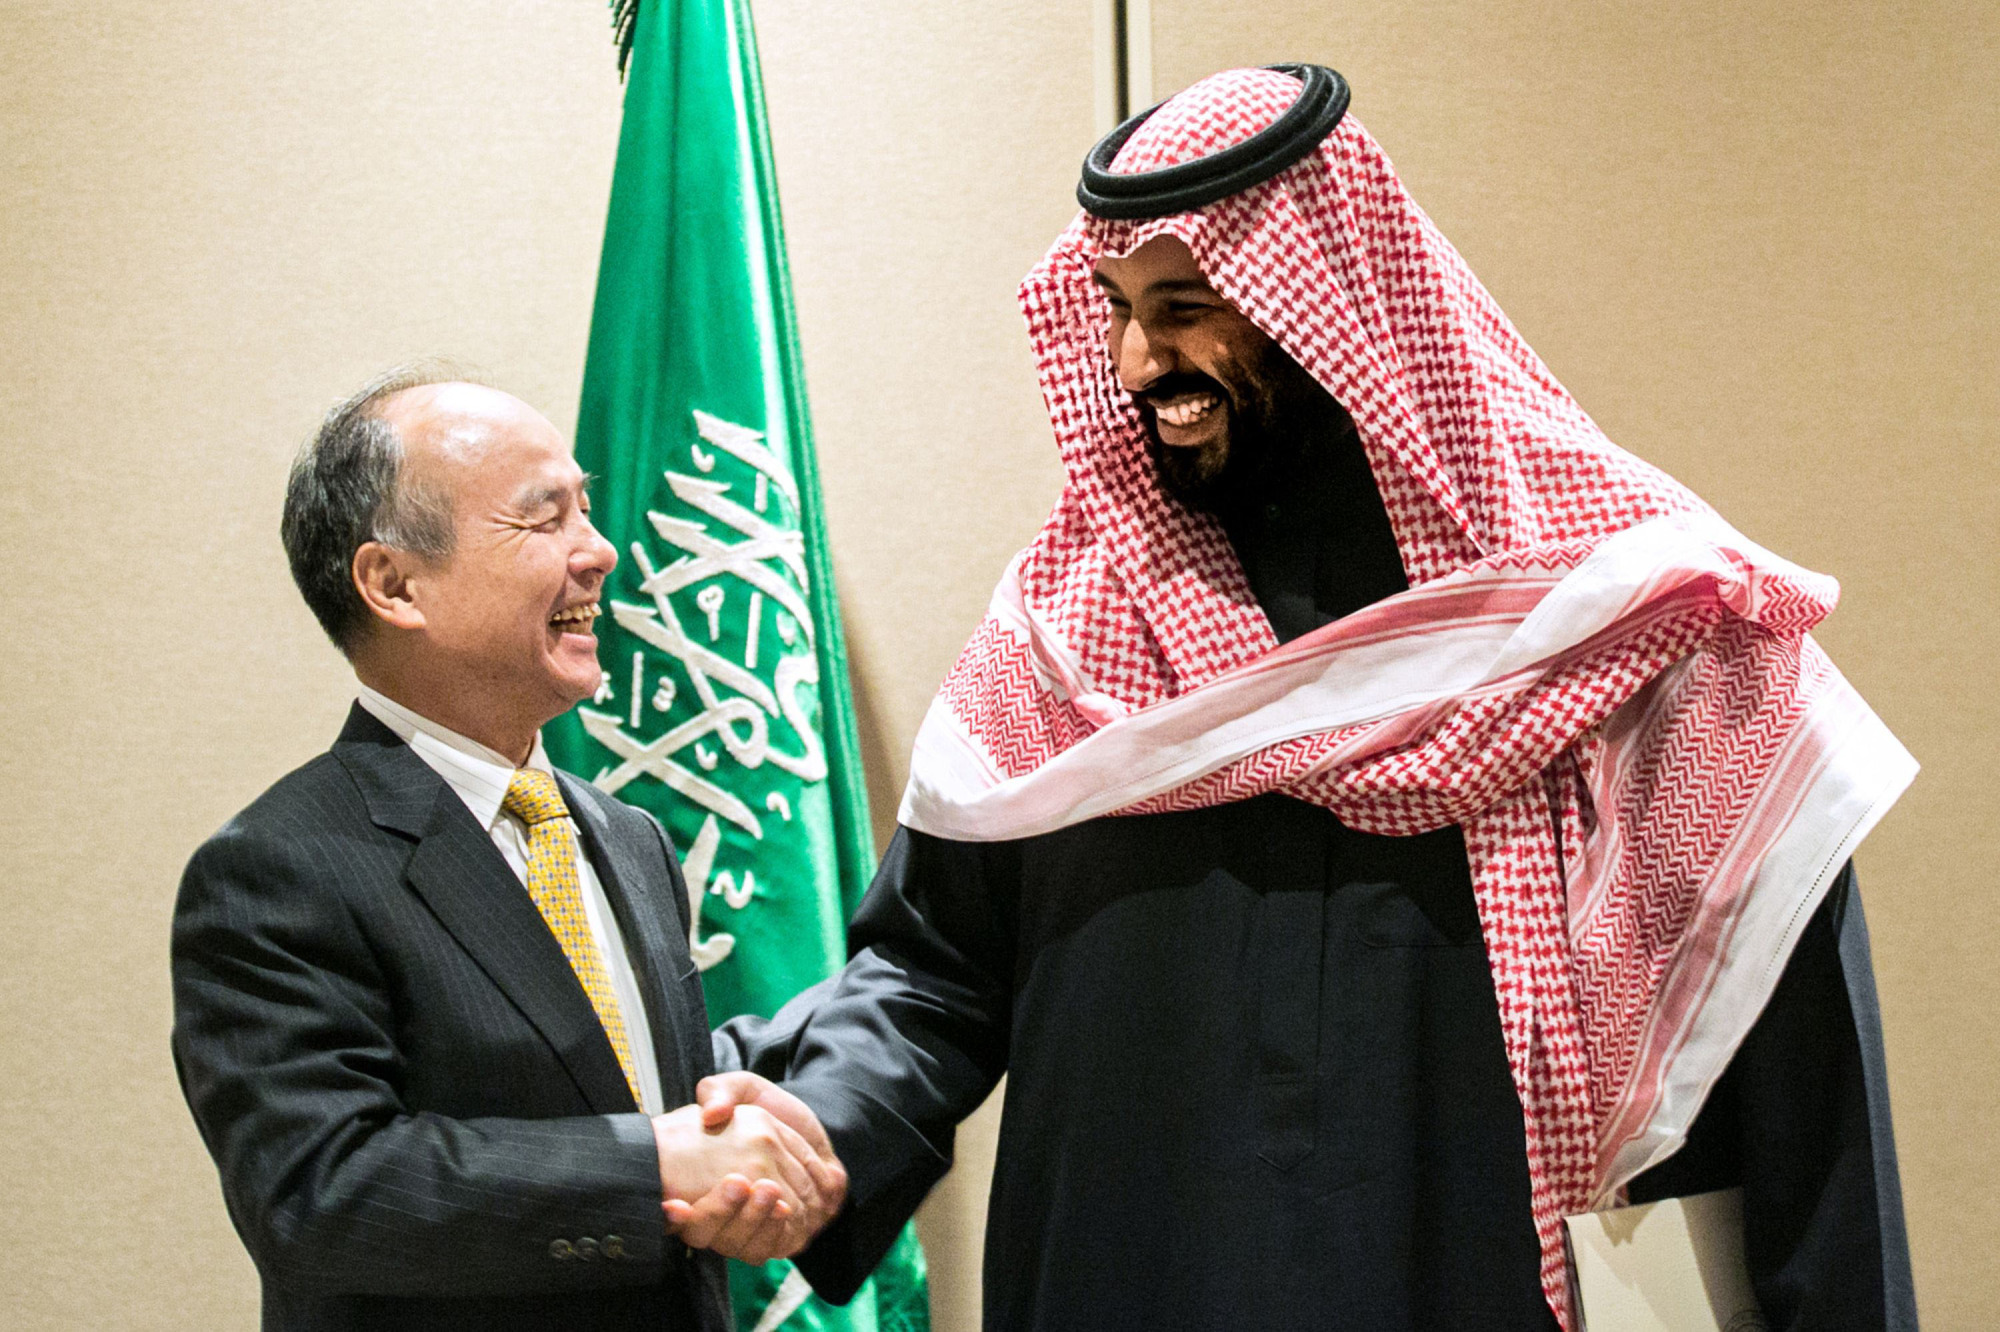 Masayoshi Son, chairman and chief executive officer of SoftBank Group Corp., and Mohammed bin Salman, Saudi Arabia's crown prince, talk after the signing of a solar energy plan in New York in March 2018. | BLOOMBERG